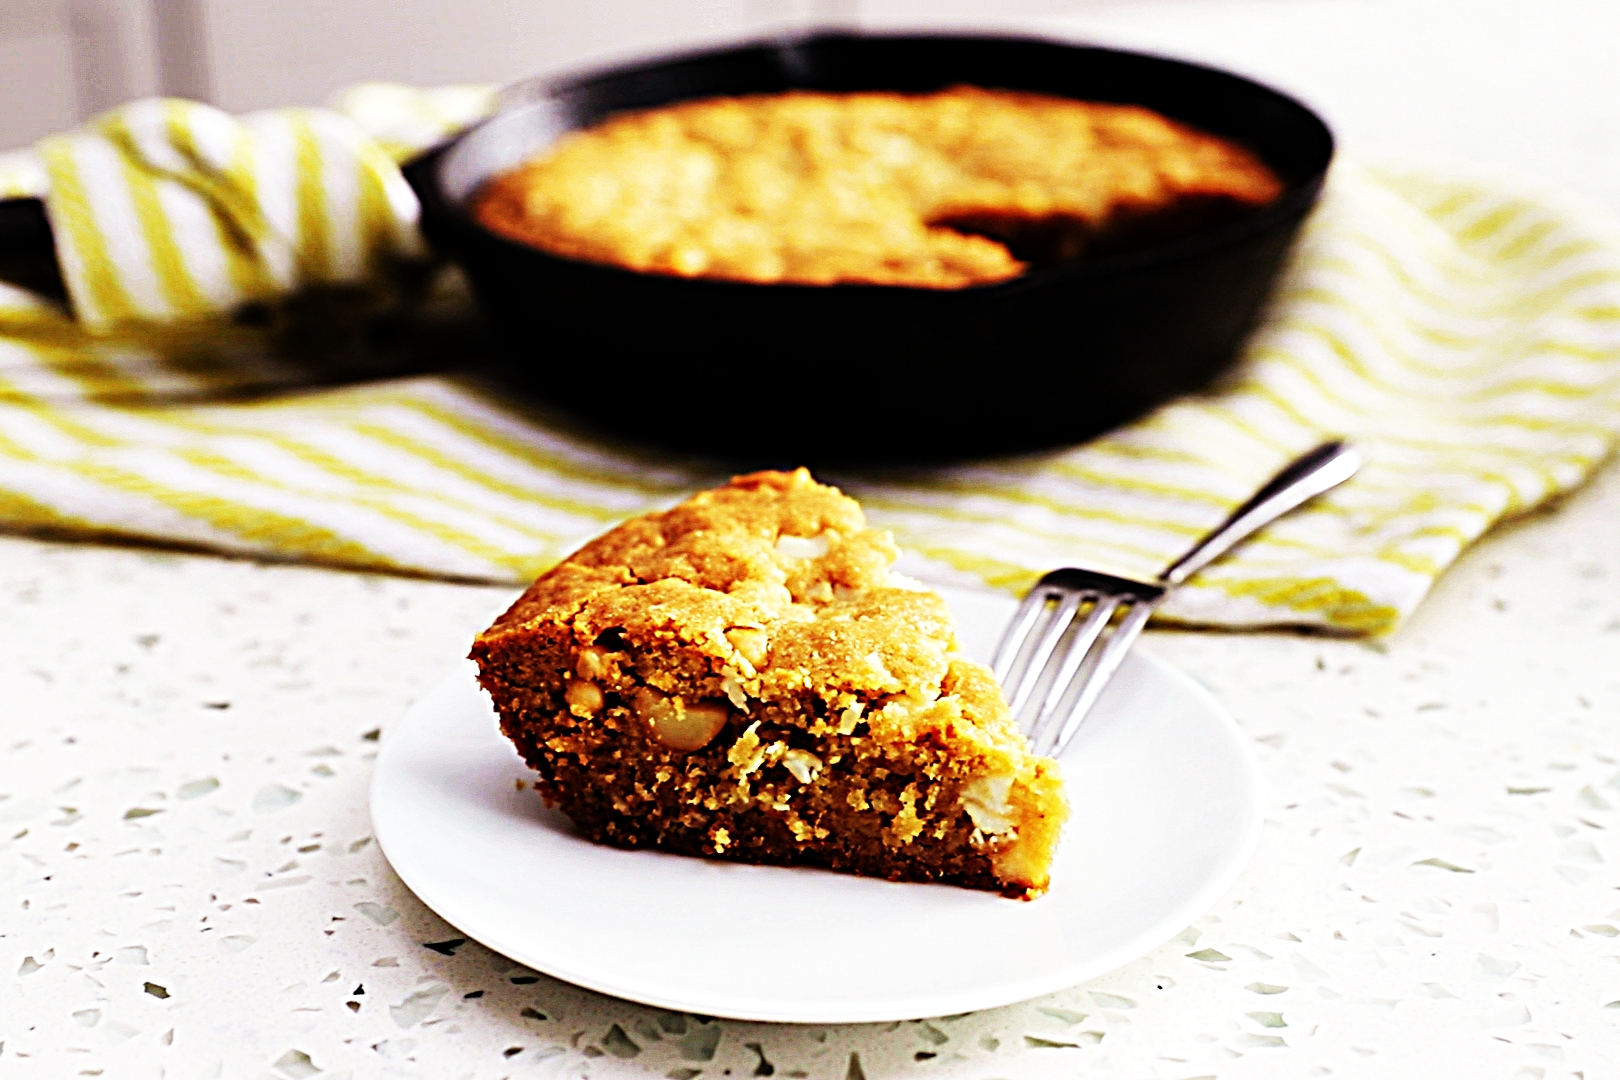 Stupid-Easy Recipe for White Chocolate Macadamia Skillet Cookie (#1 Top-Rated)